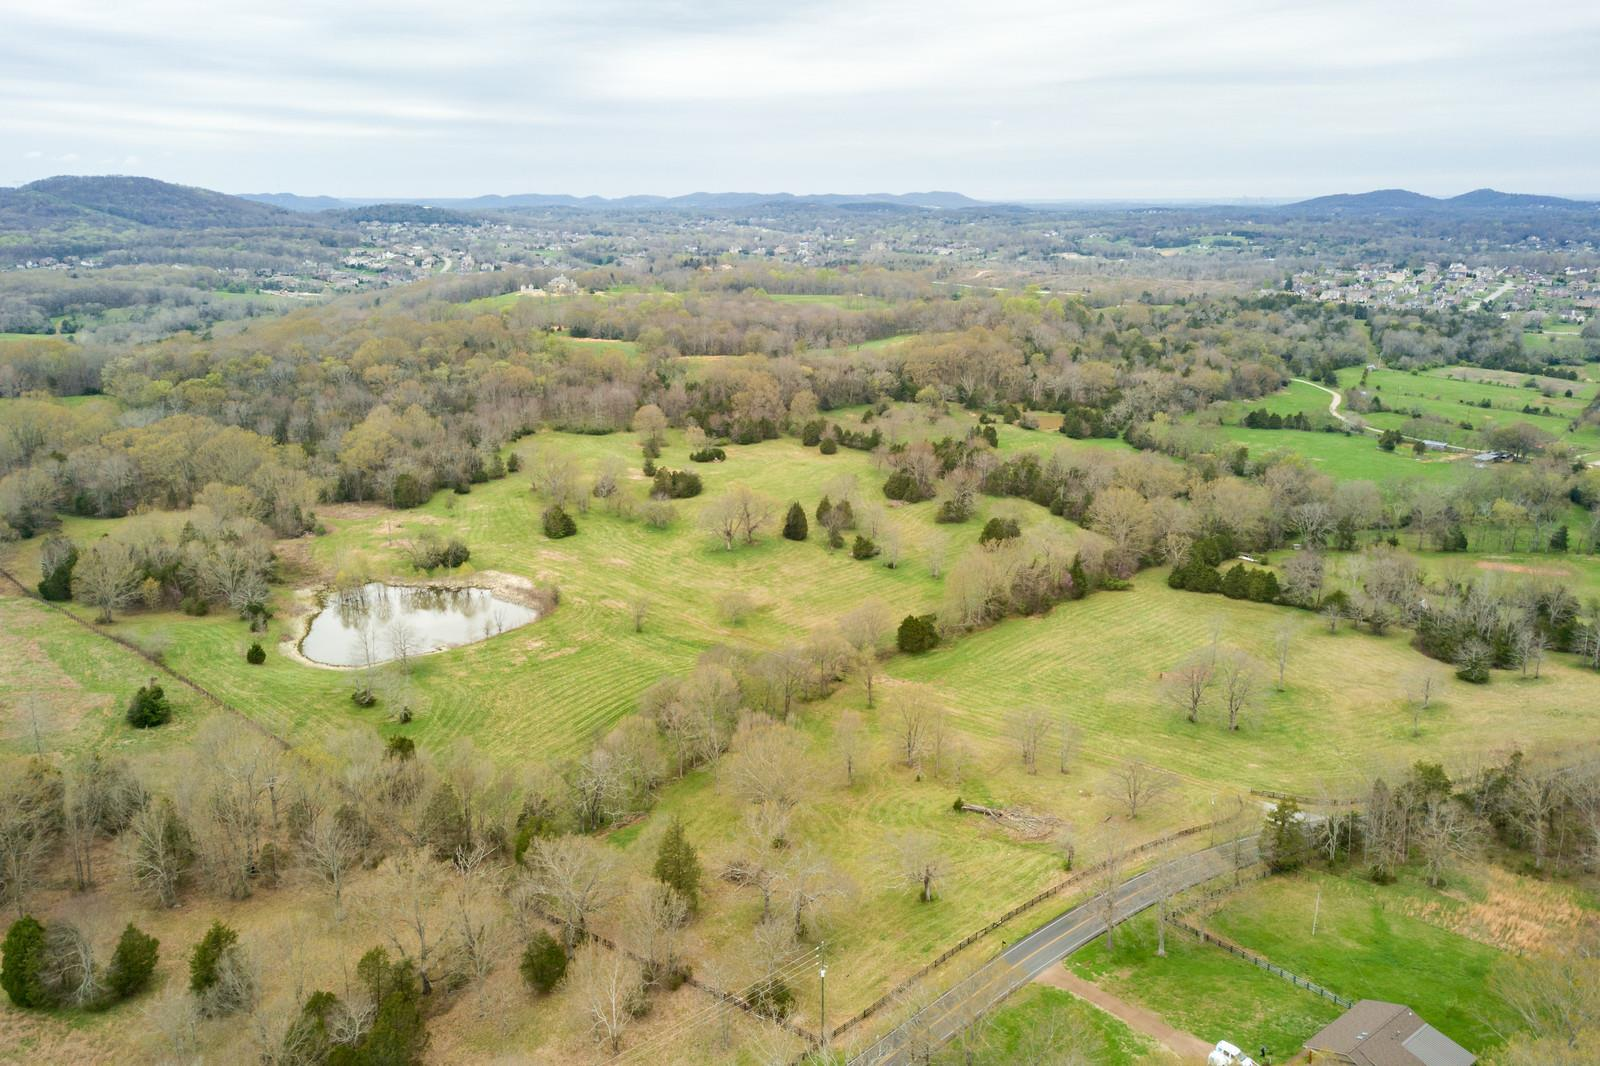 0 Split Log Rd, Brentwood, TN 37027 - Brentwood, TN real estate listing